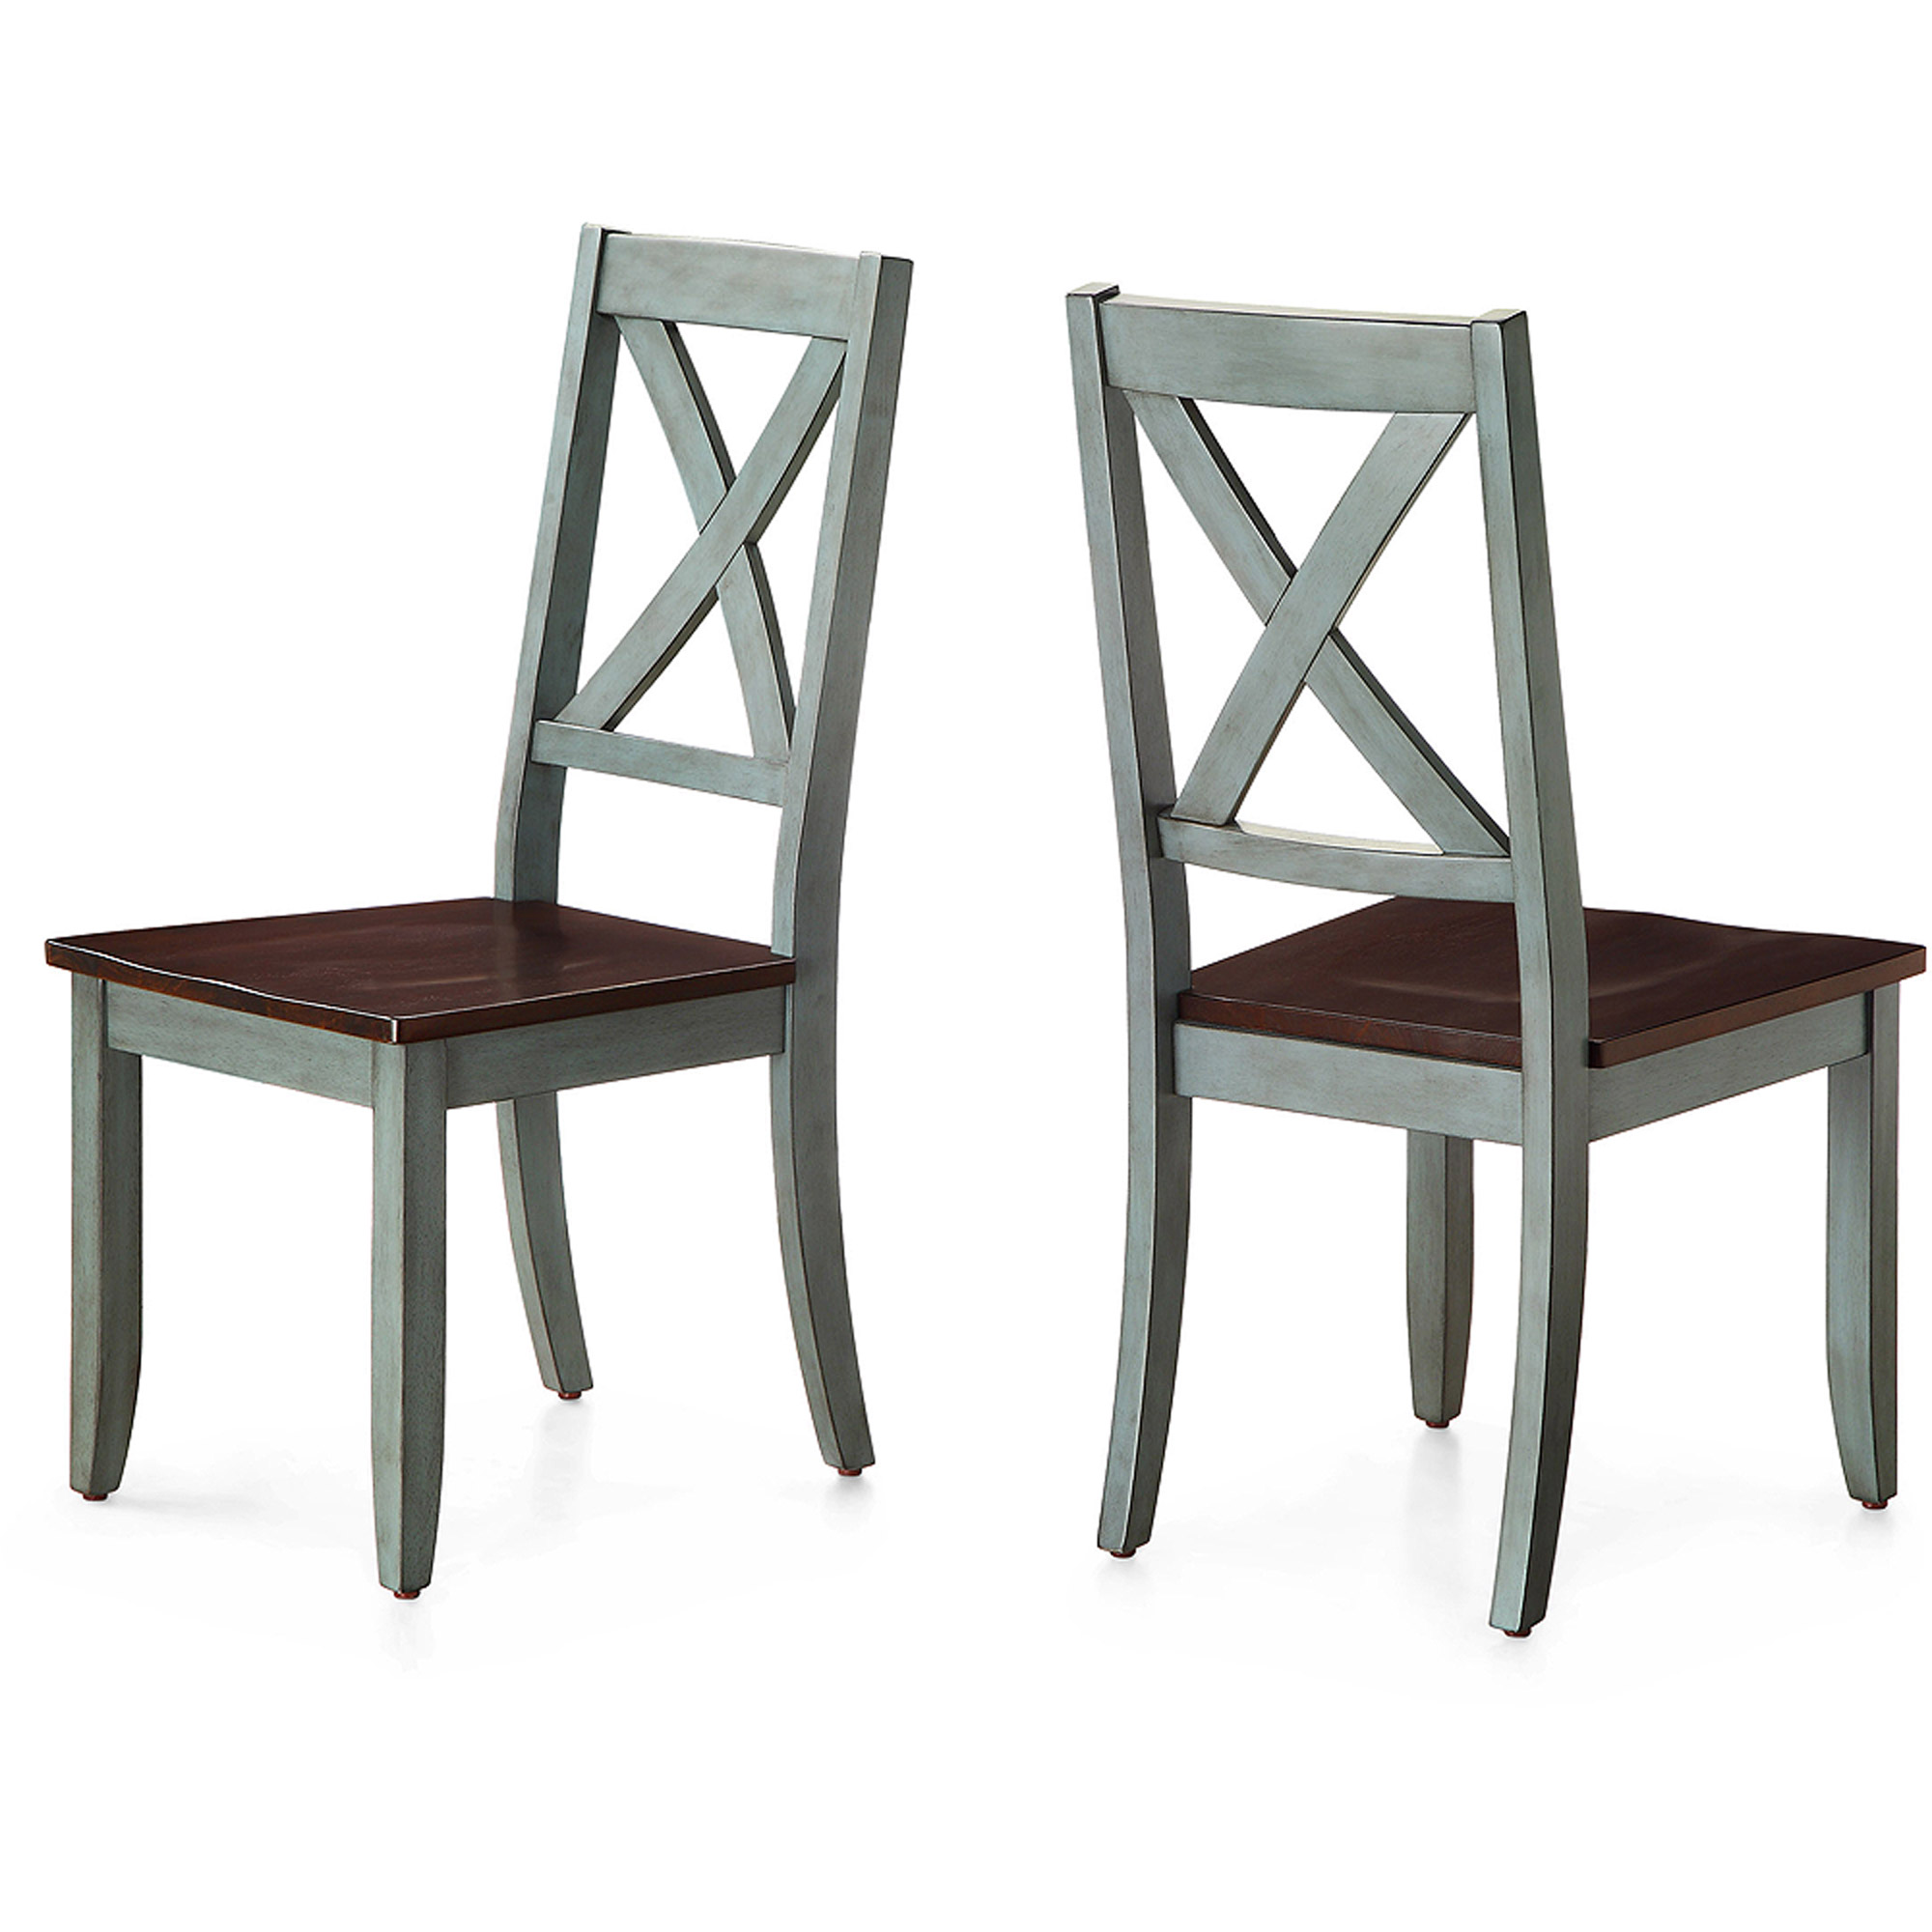 Charmant Better Homes And Gardens Maddox Crossing Dining Chair, Blue, Set Of 2